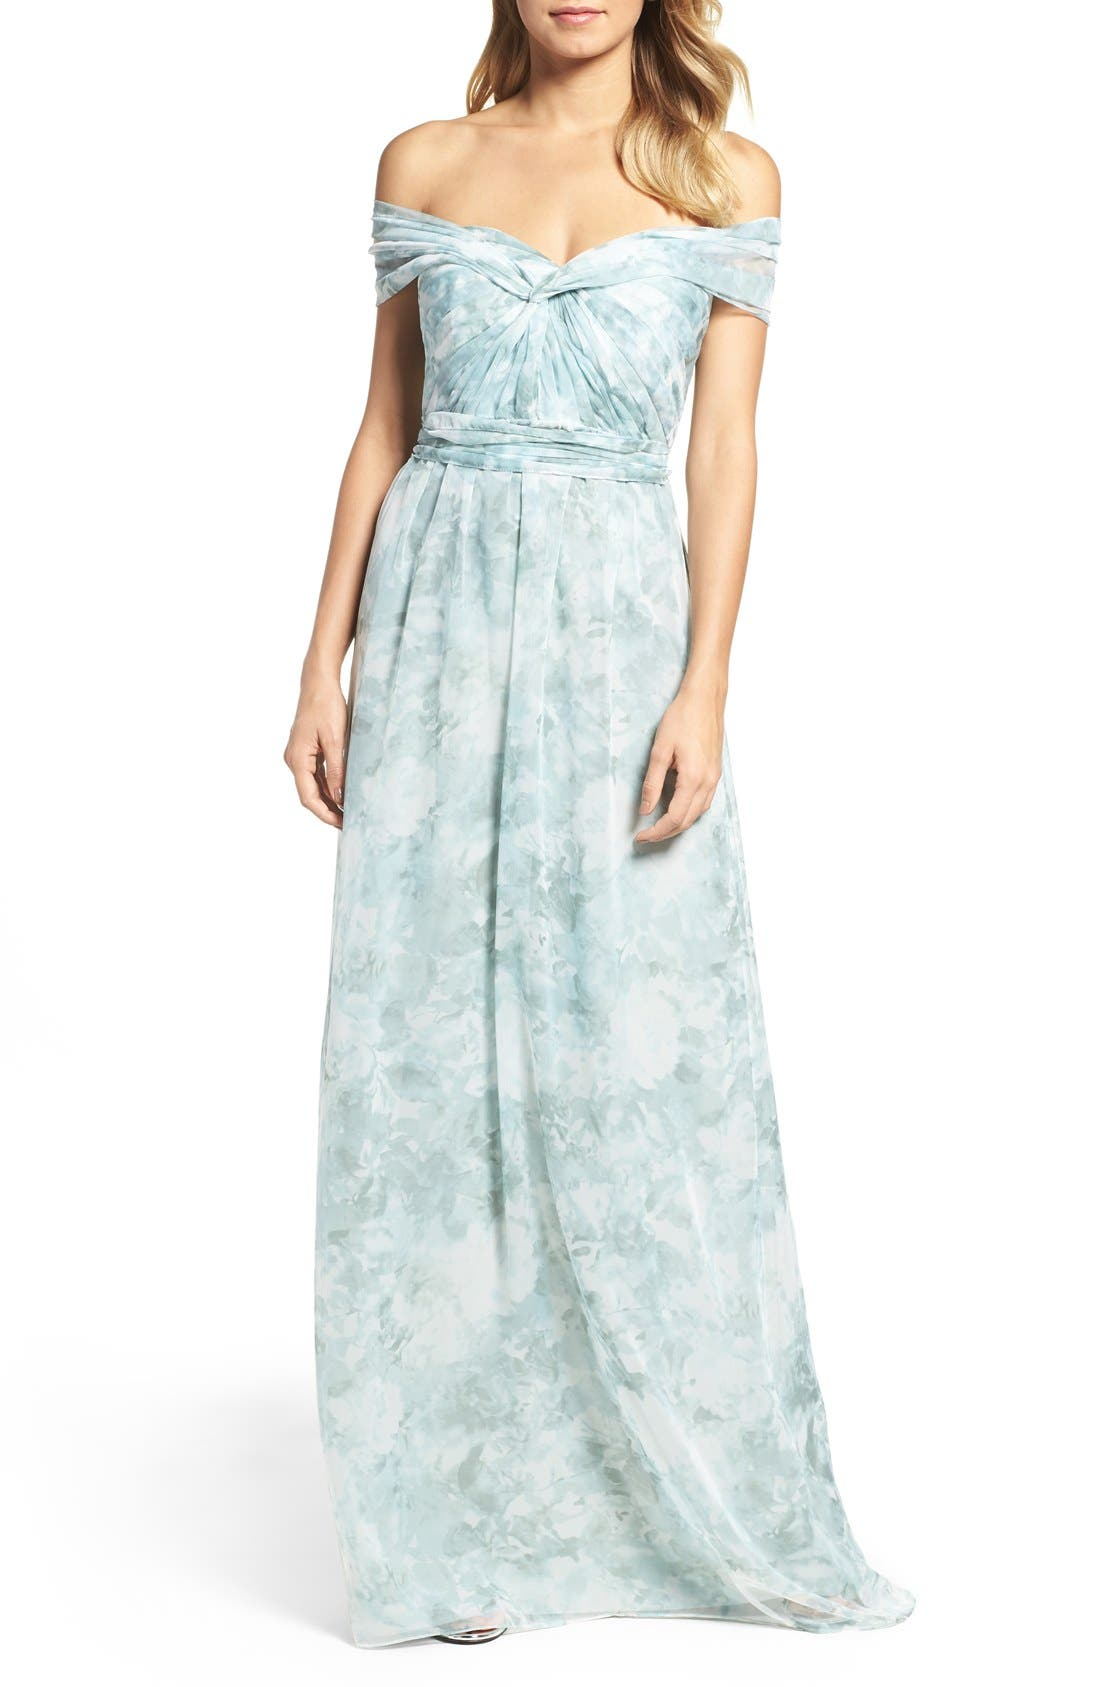 Jenny Yoo 'Nyla' Floral Print Convertible Strapless Chiffon Gown